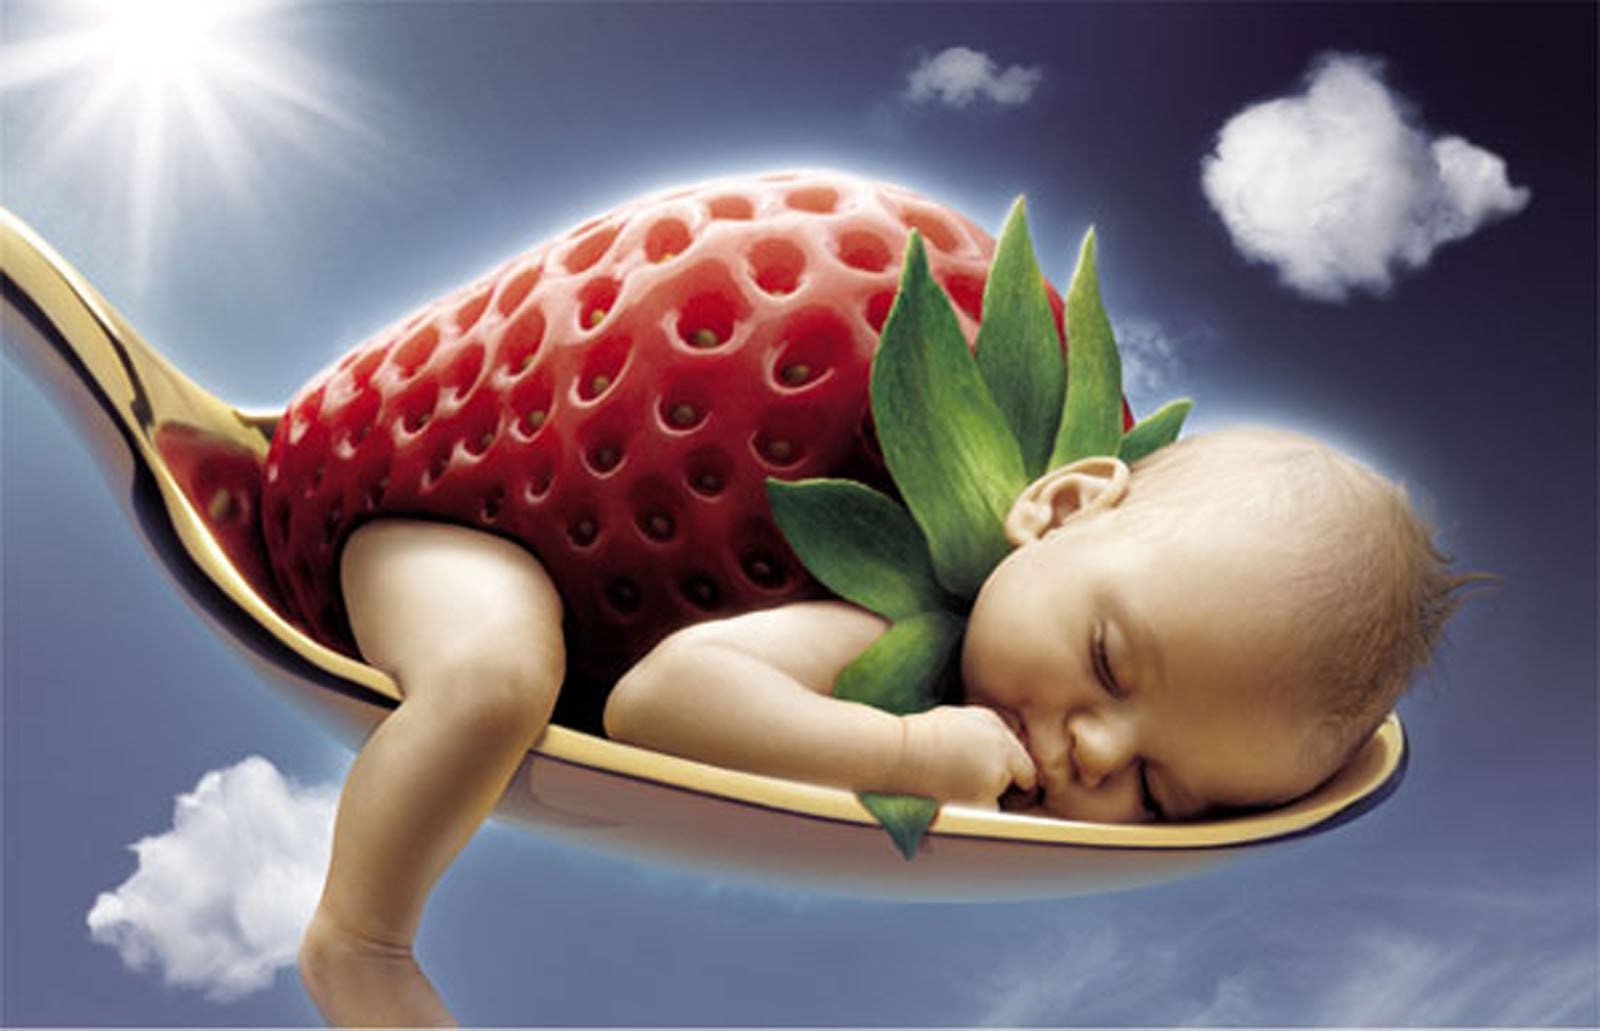 Sweet cute wallpapers wallpapersafari sweet baby sleeping wallpapers love sms di 3033 hd 1600x1031 thecheapjerseys Images